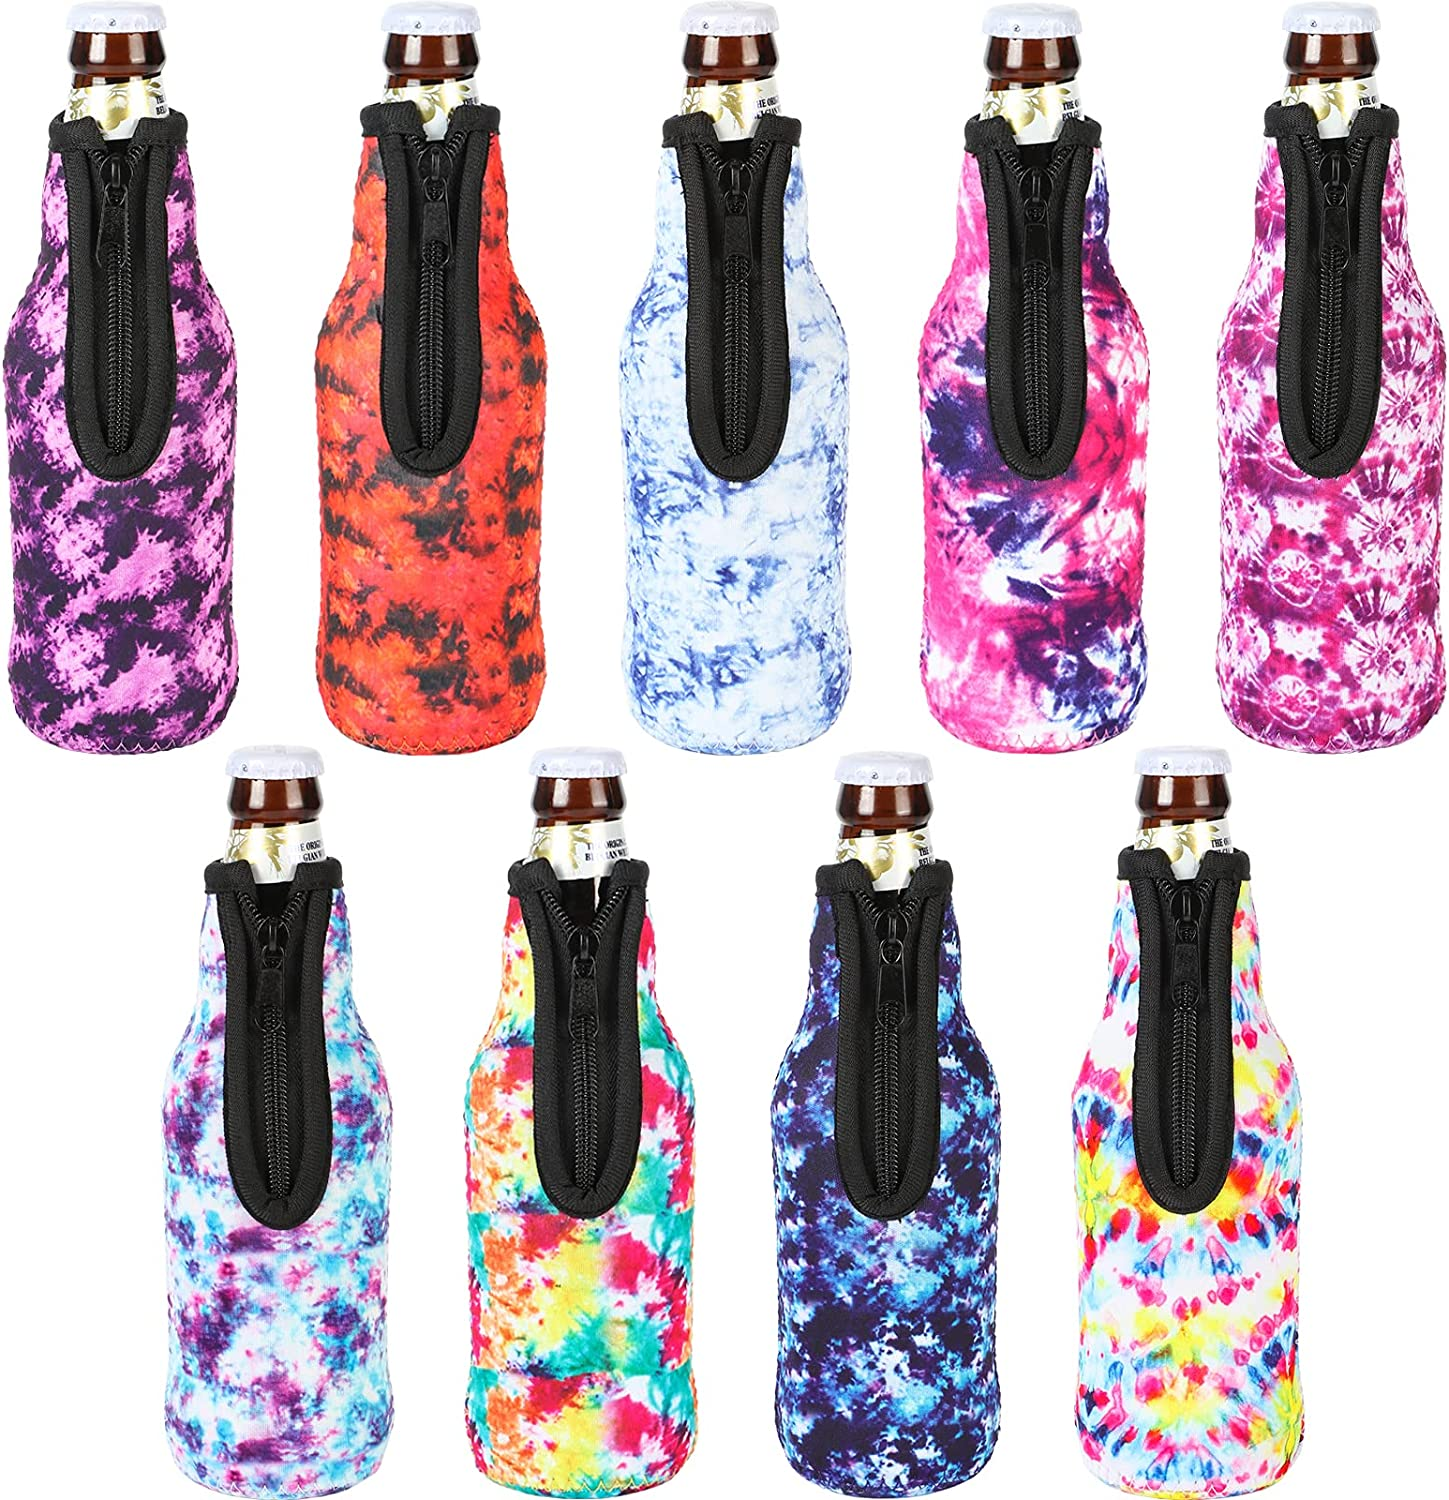 HaiMay 9 Pieces Reusable Bombing new work Beer Cooler Cheap mail order sales Bottle Covers Sleeves